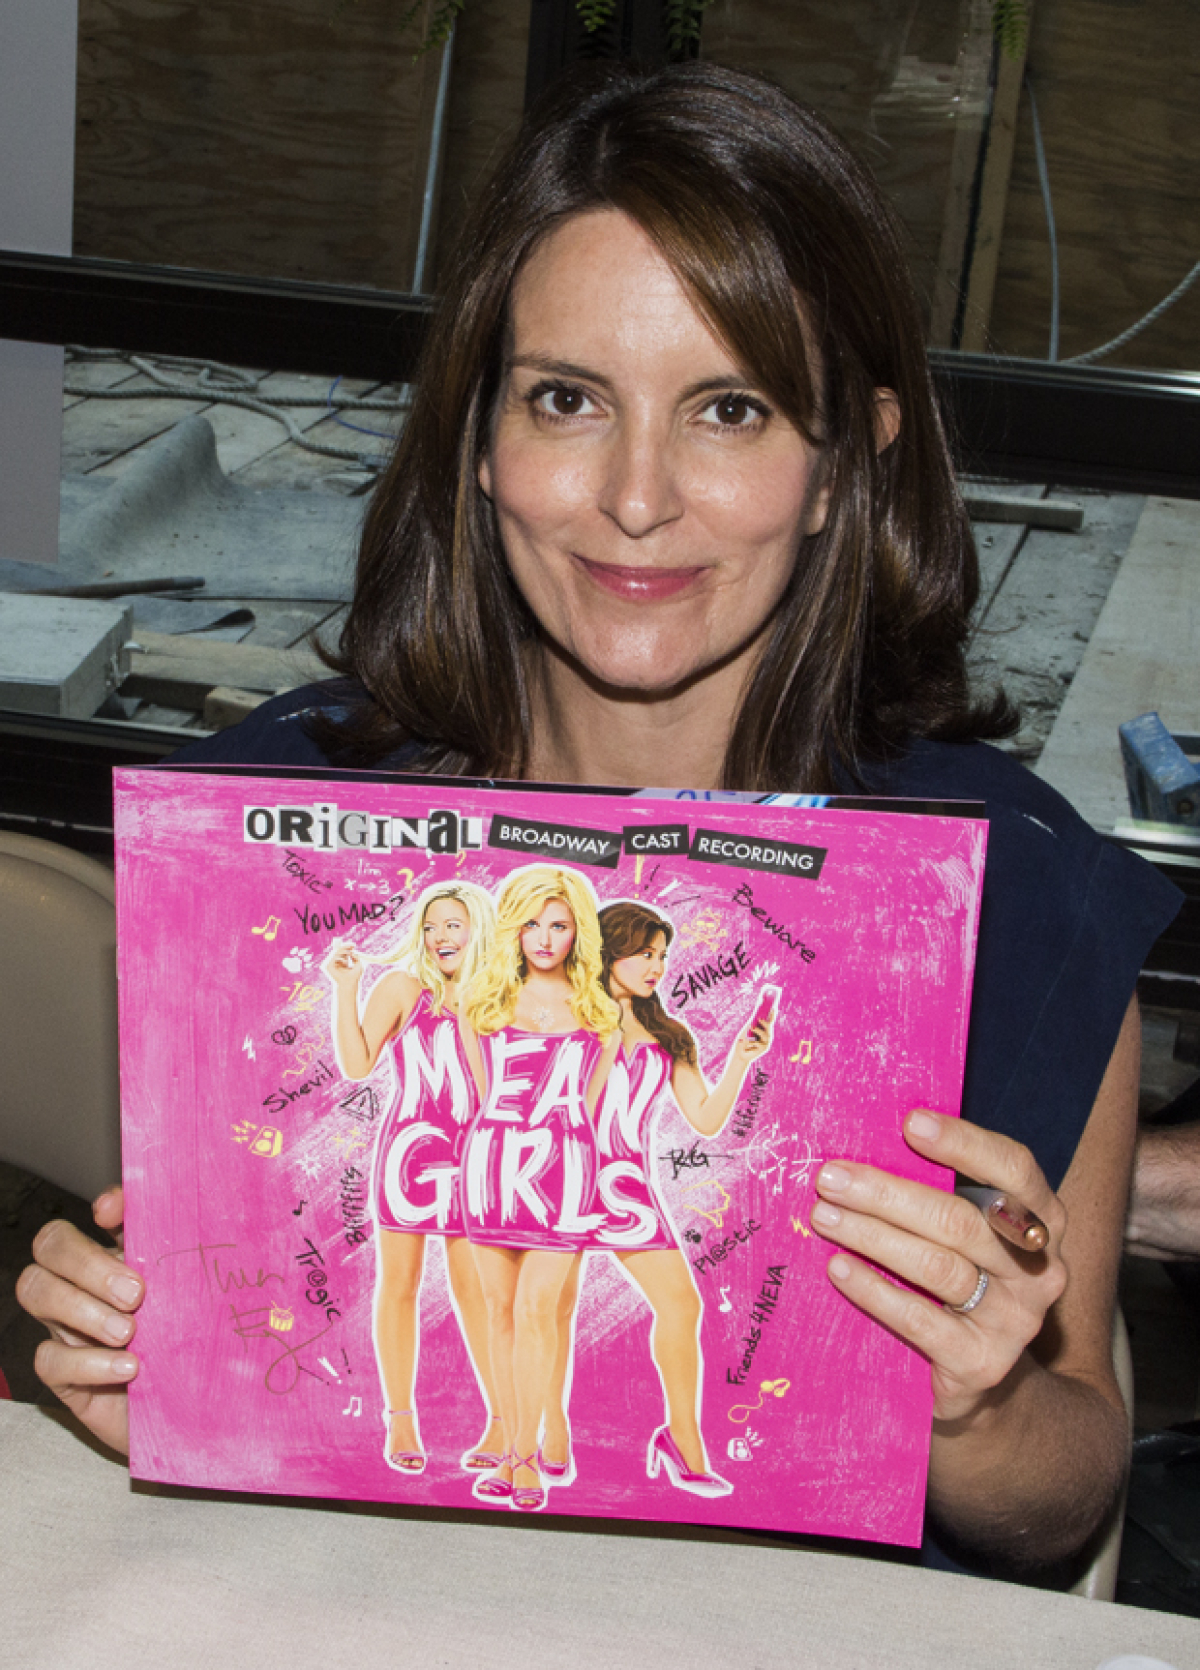 Tina Fey And Mean Girls Stars Sign Vinyl Cast Albums